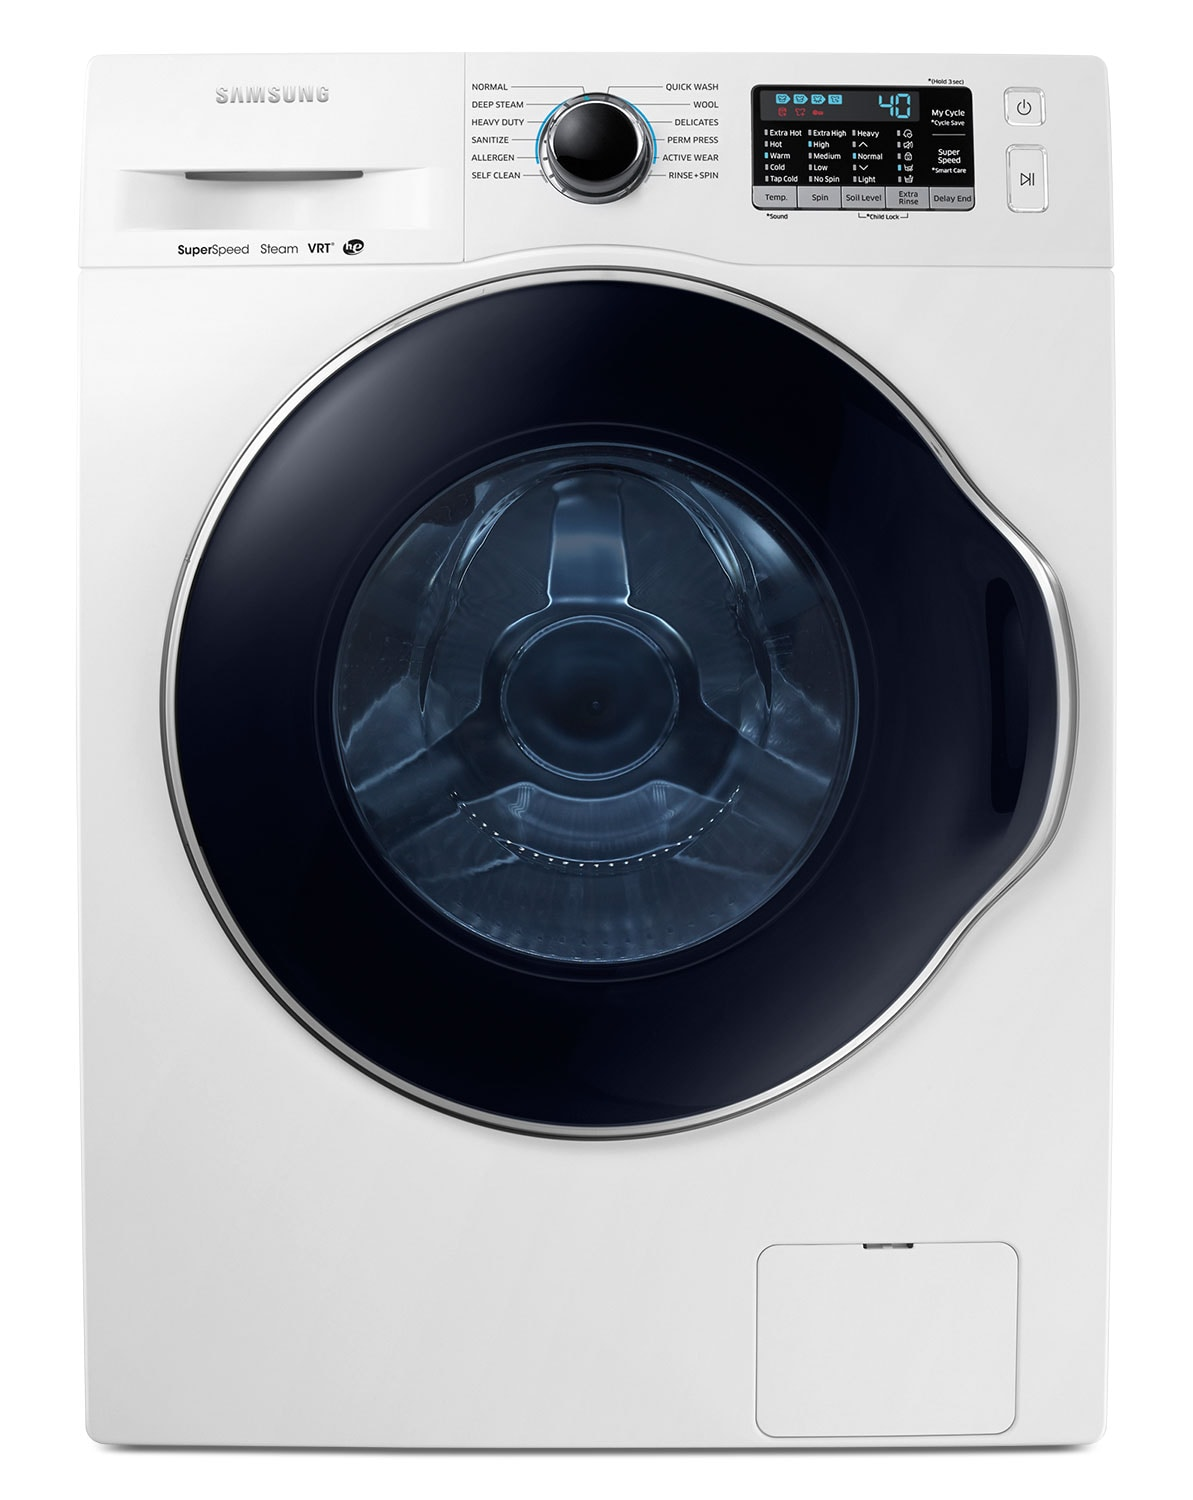 Washers and Dryers - Samsung White Front-Load Washer (2.6 Cu. Ft. IEC) - WW22K6800AW/A2